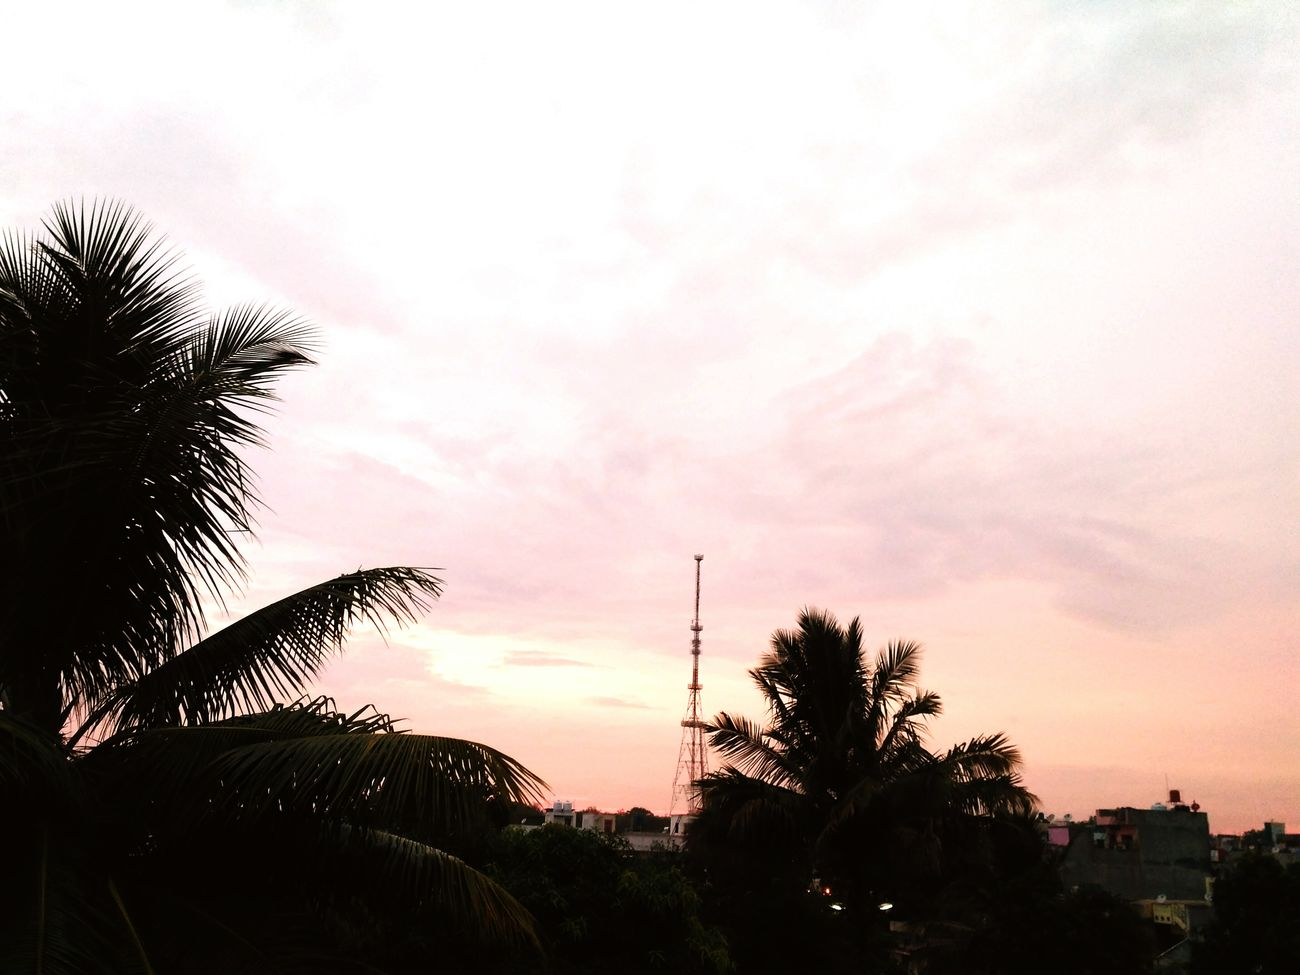 At evening, Cloud - Sky Tree No People Beauty In Nature Sky Towers And Sky Sunset Times Backgrounds Outdoors